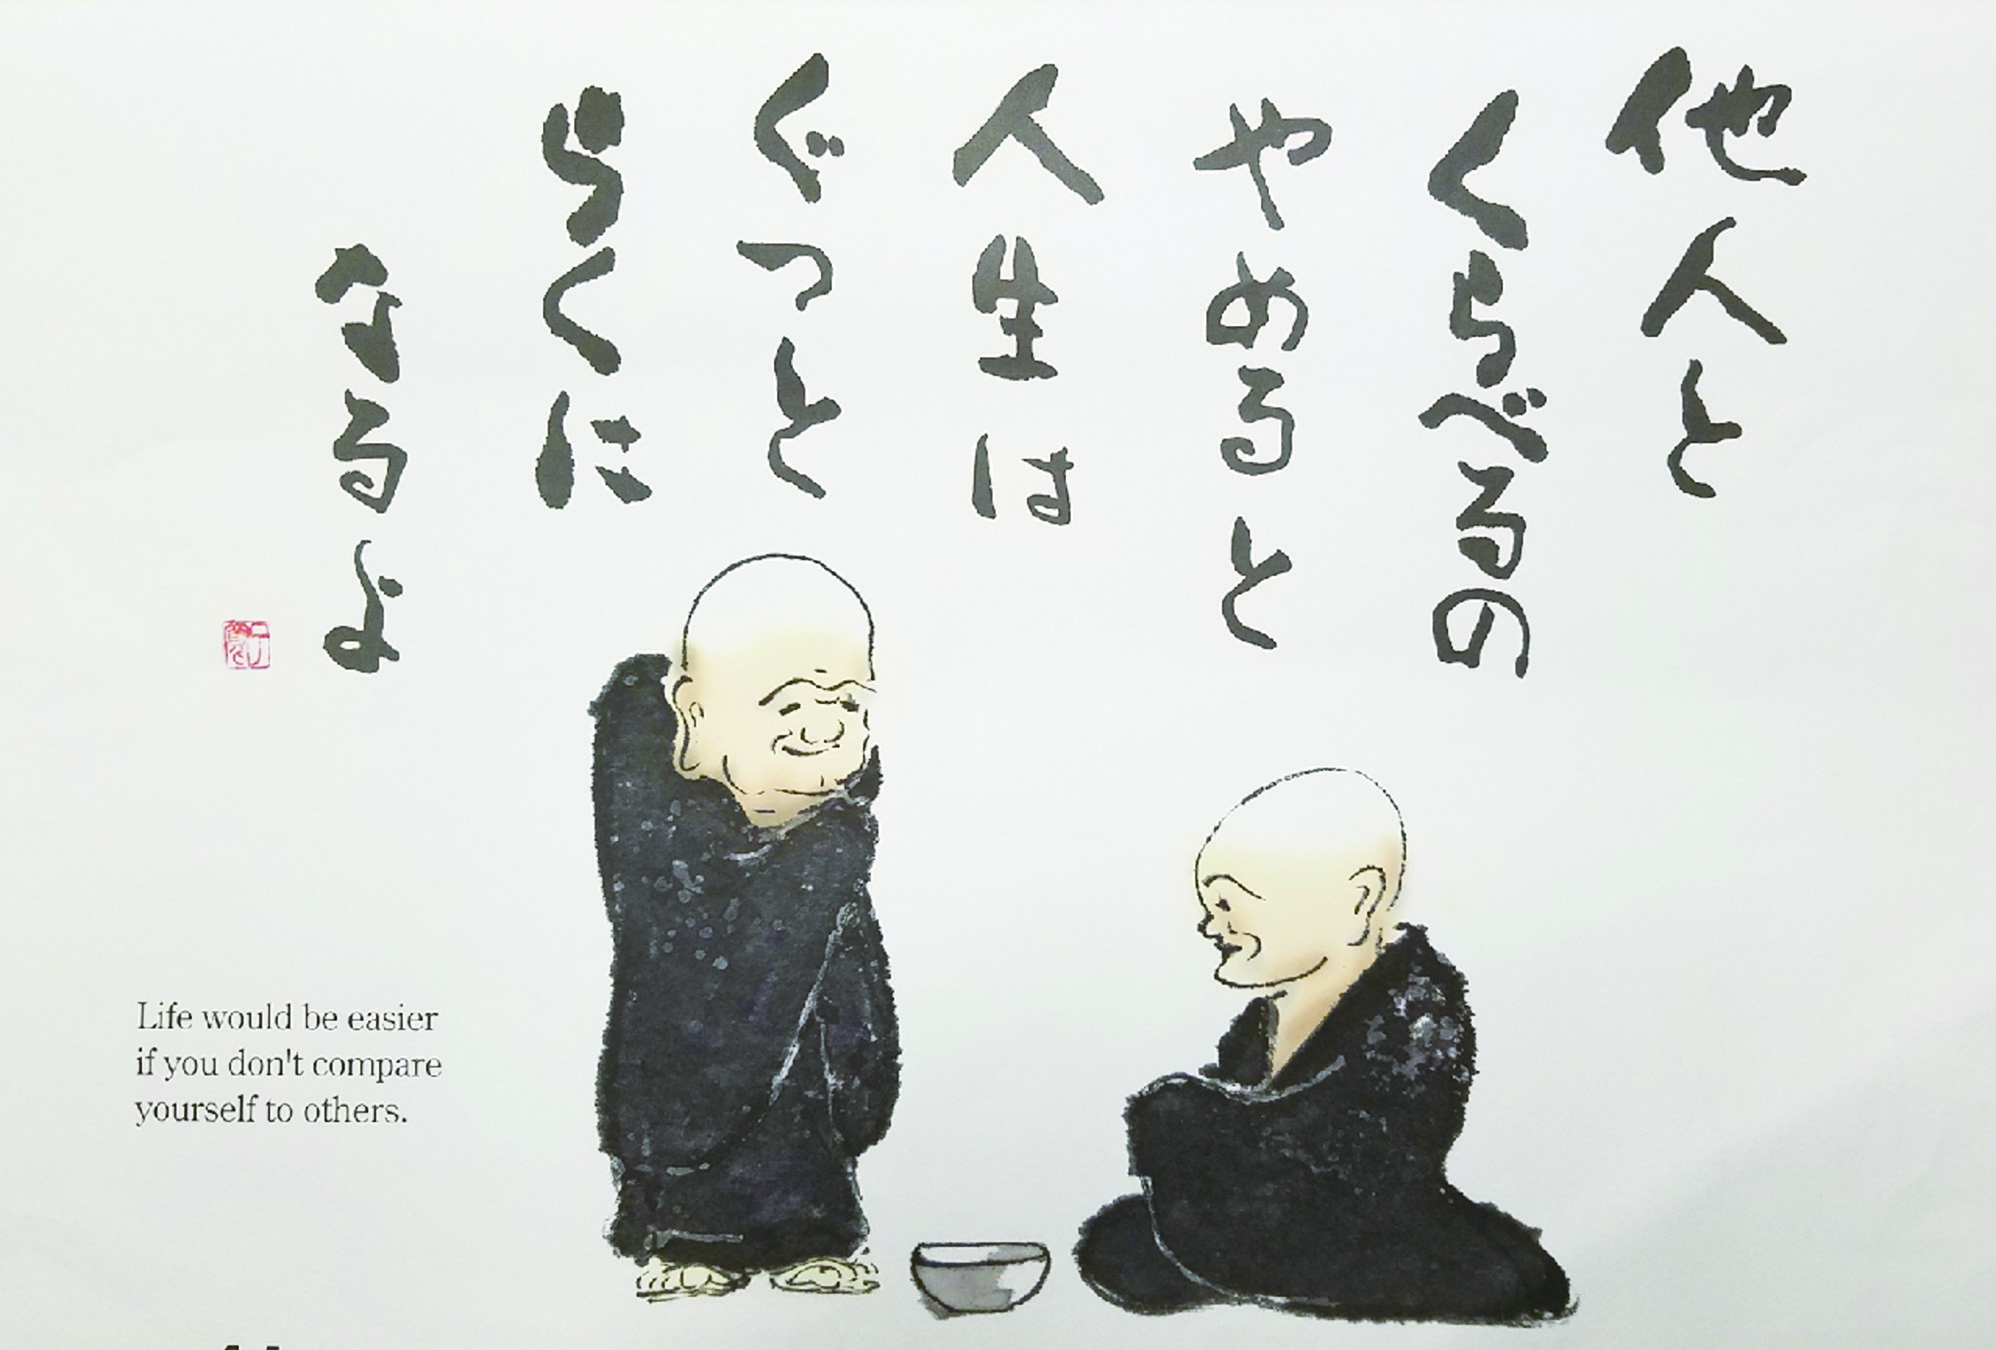 Comic image of Shushin, May 19, 2017 Issue